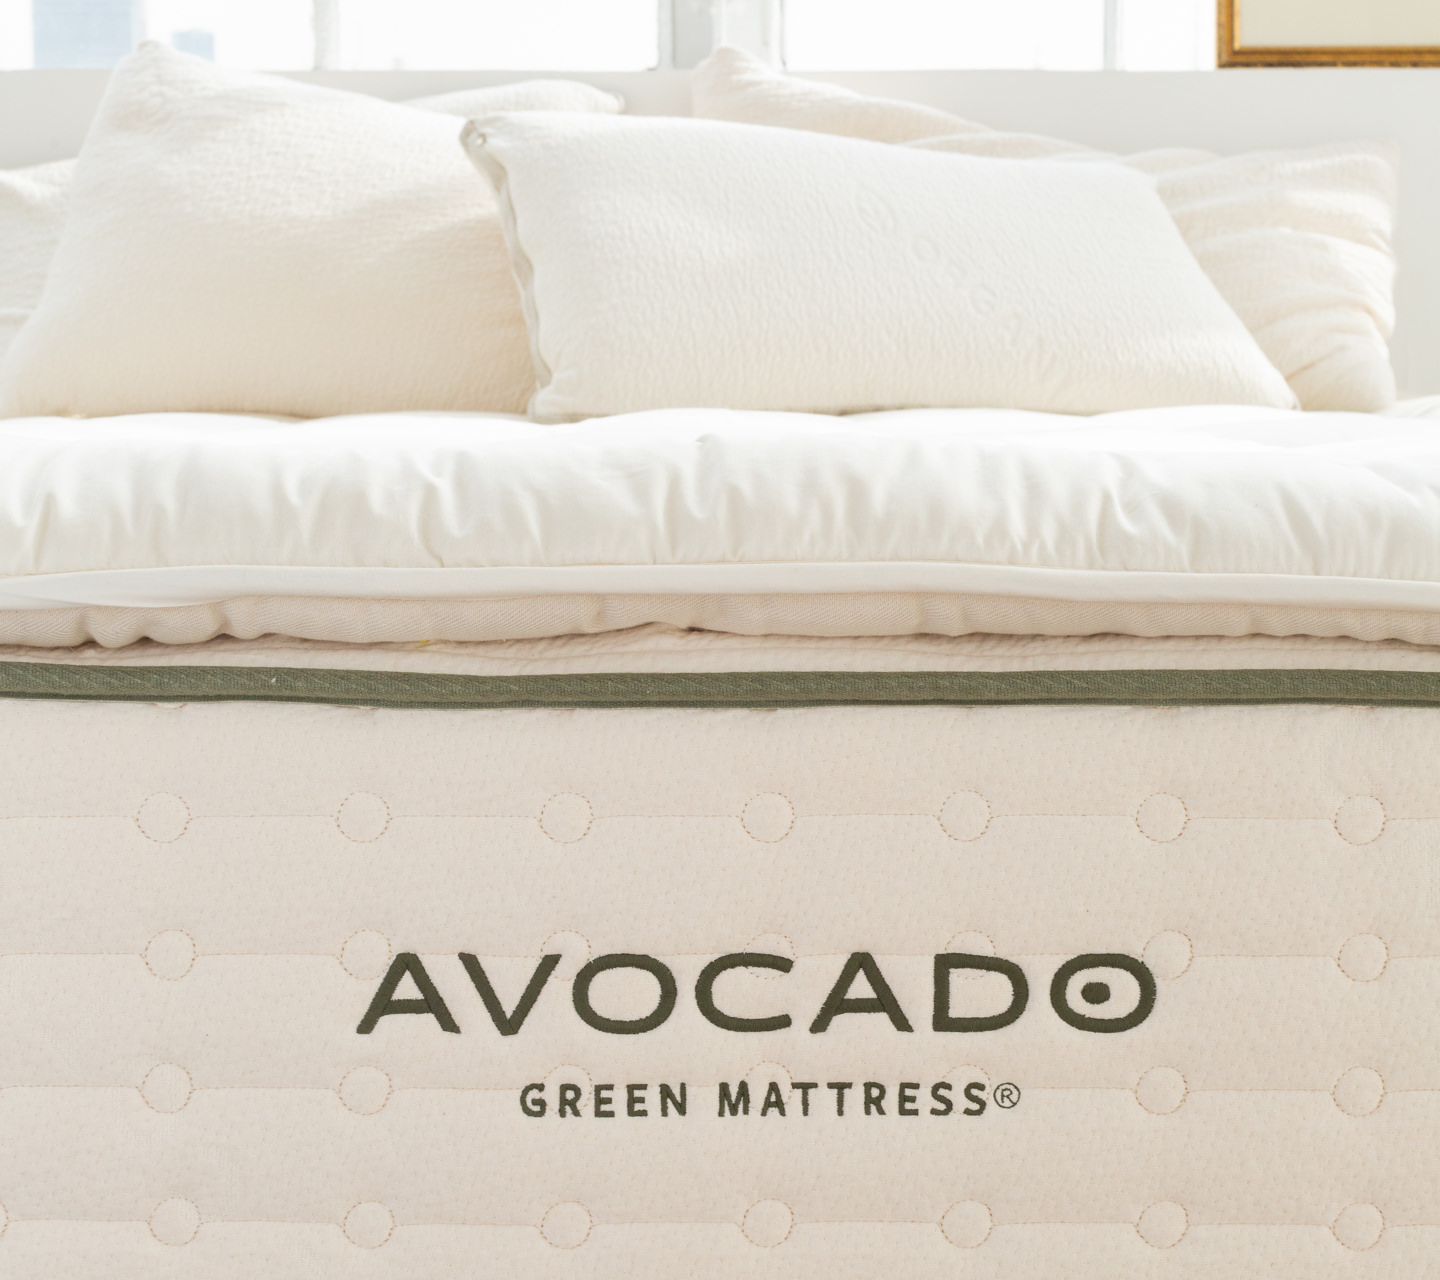 alpaca mattress pillow topper review